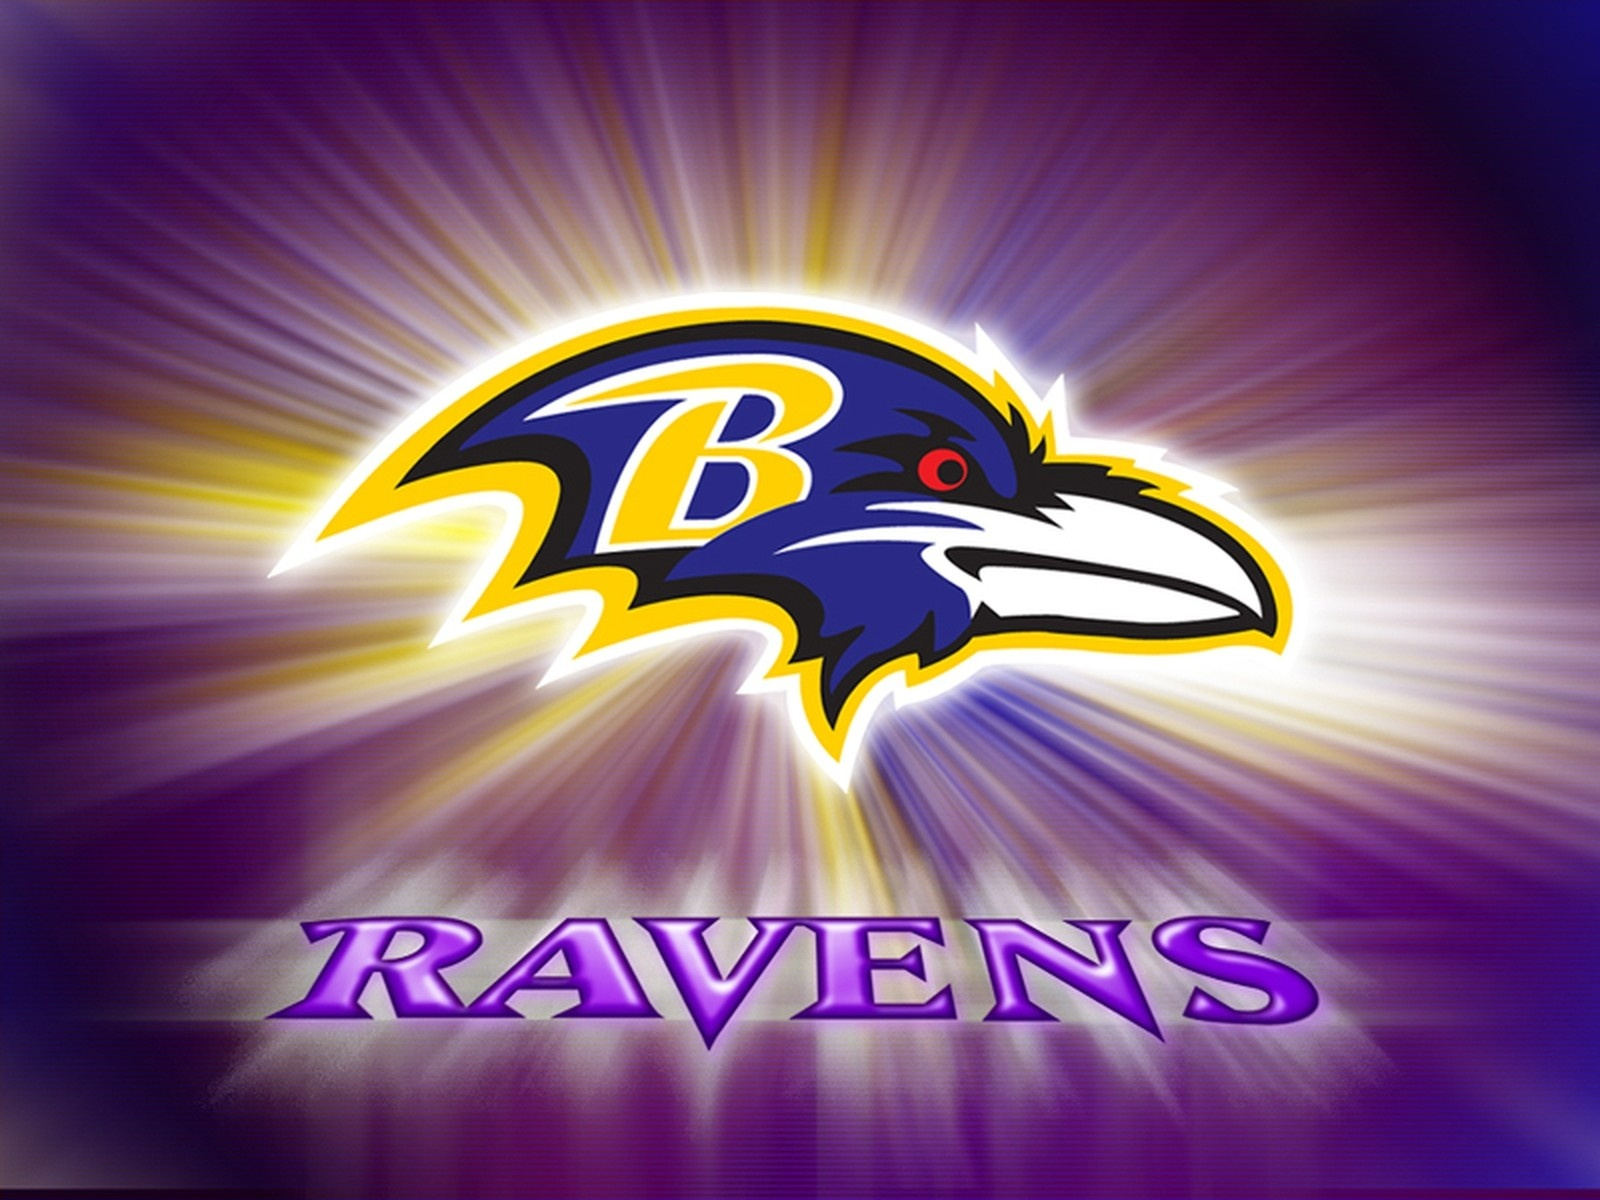 Ravens Wallpapers HD| HD Wallpapers ,Backgrounds ,Photos ,Pictures, Image ,PC